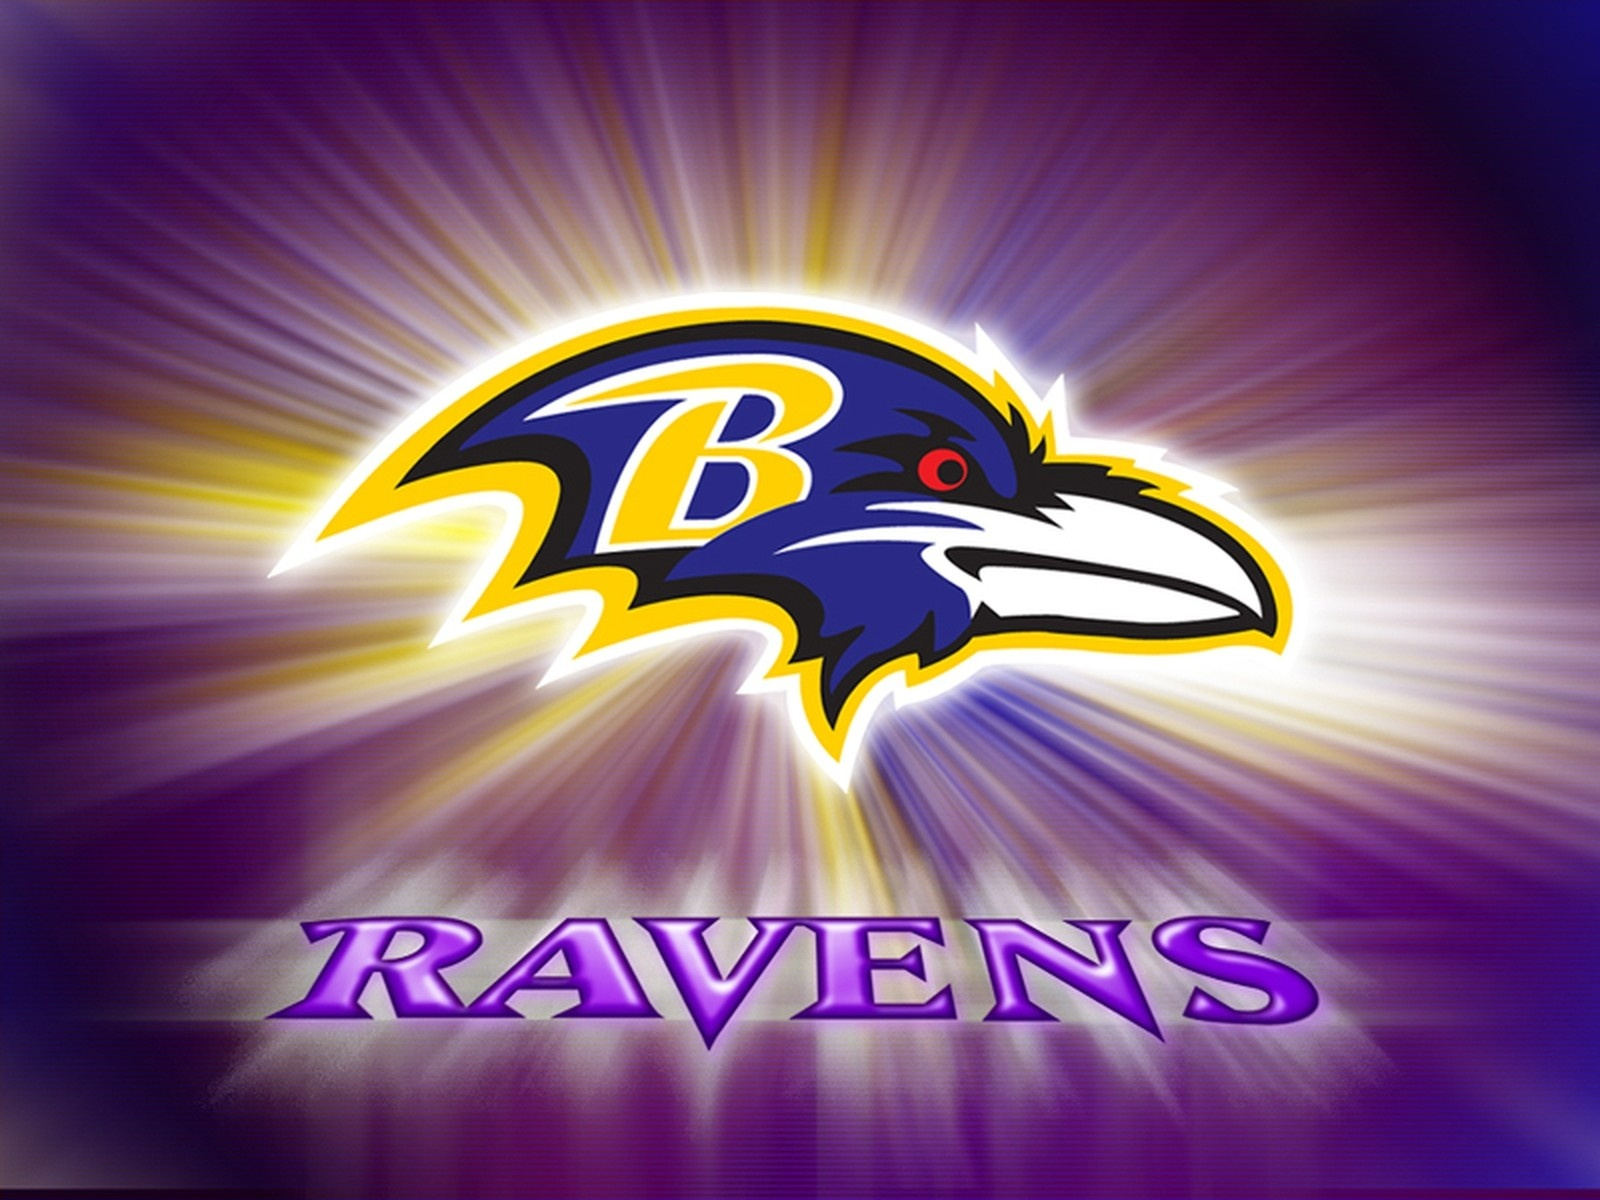 Ravens Wallpapers HD| HD Wallpapers ,Backgrounds ,Photos ,Pictures, Image ,PC